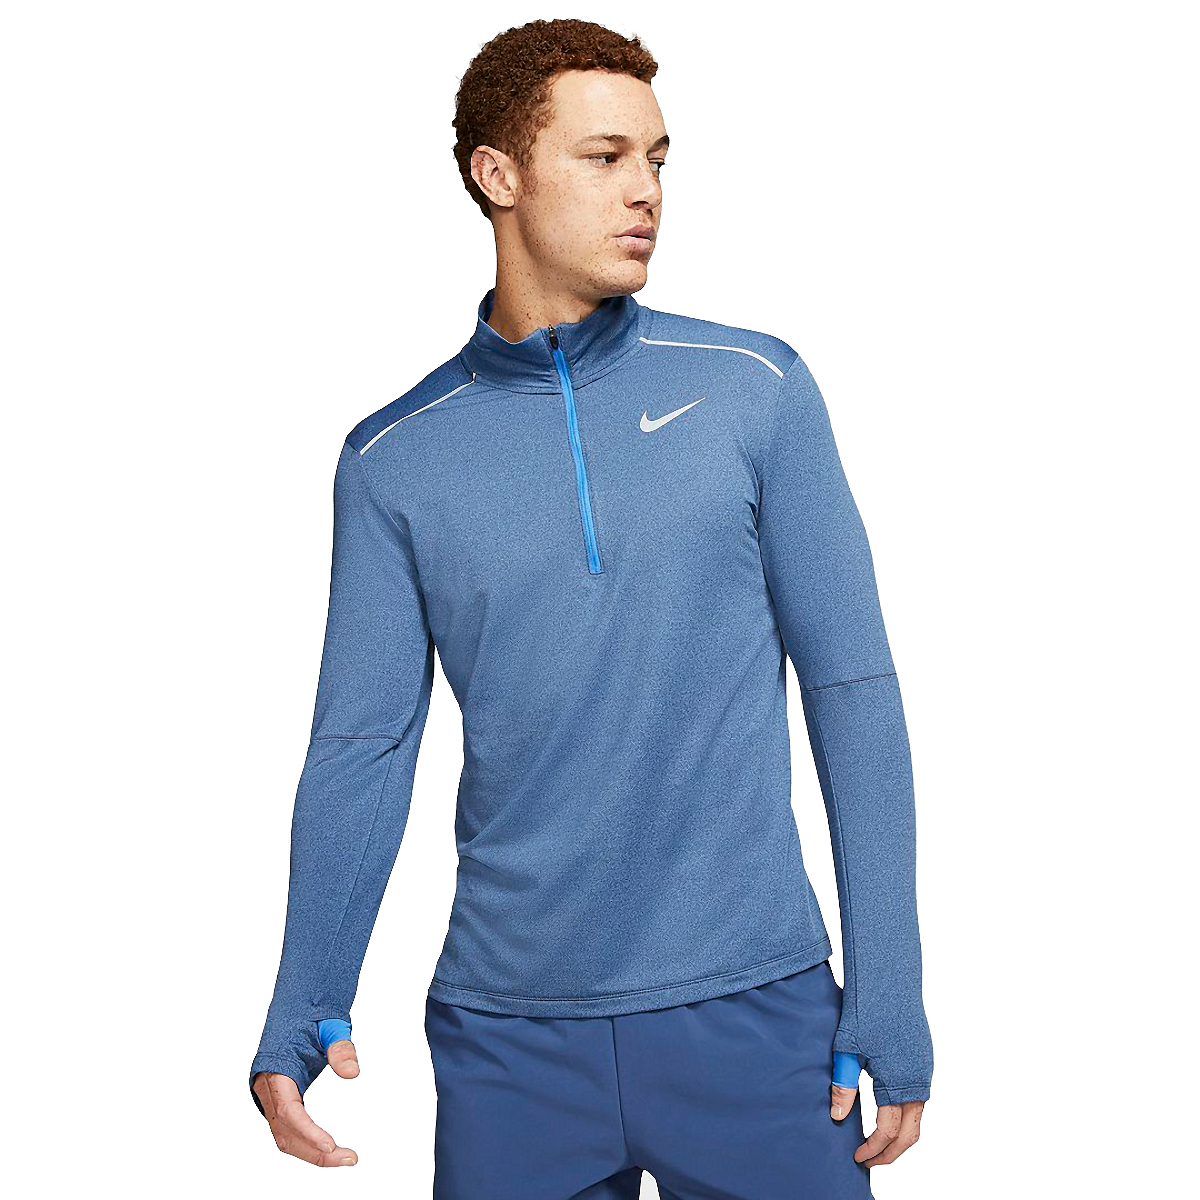 Men's Nike Element Half Zip 3.0 - Color: Obsidian/Heather - Size: XS, Obsidian/Heather, large, image 1